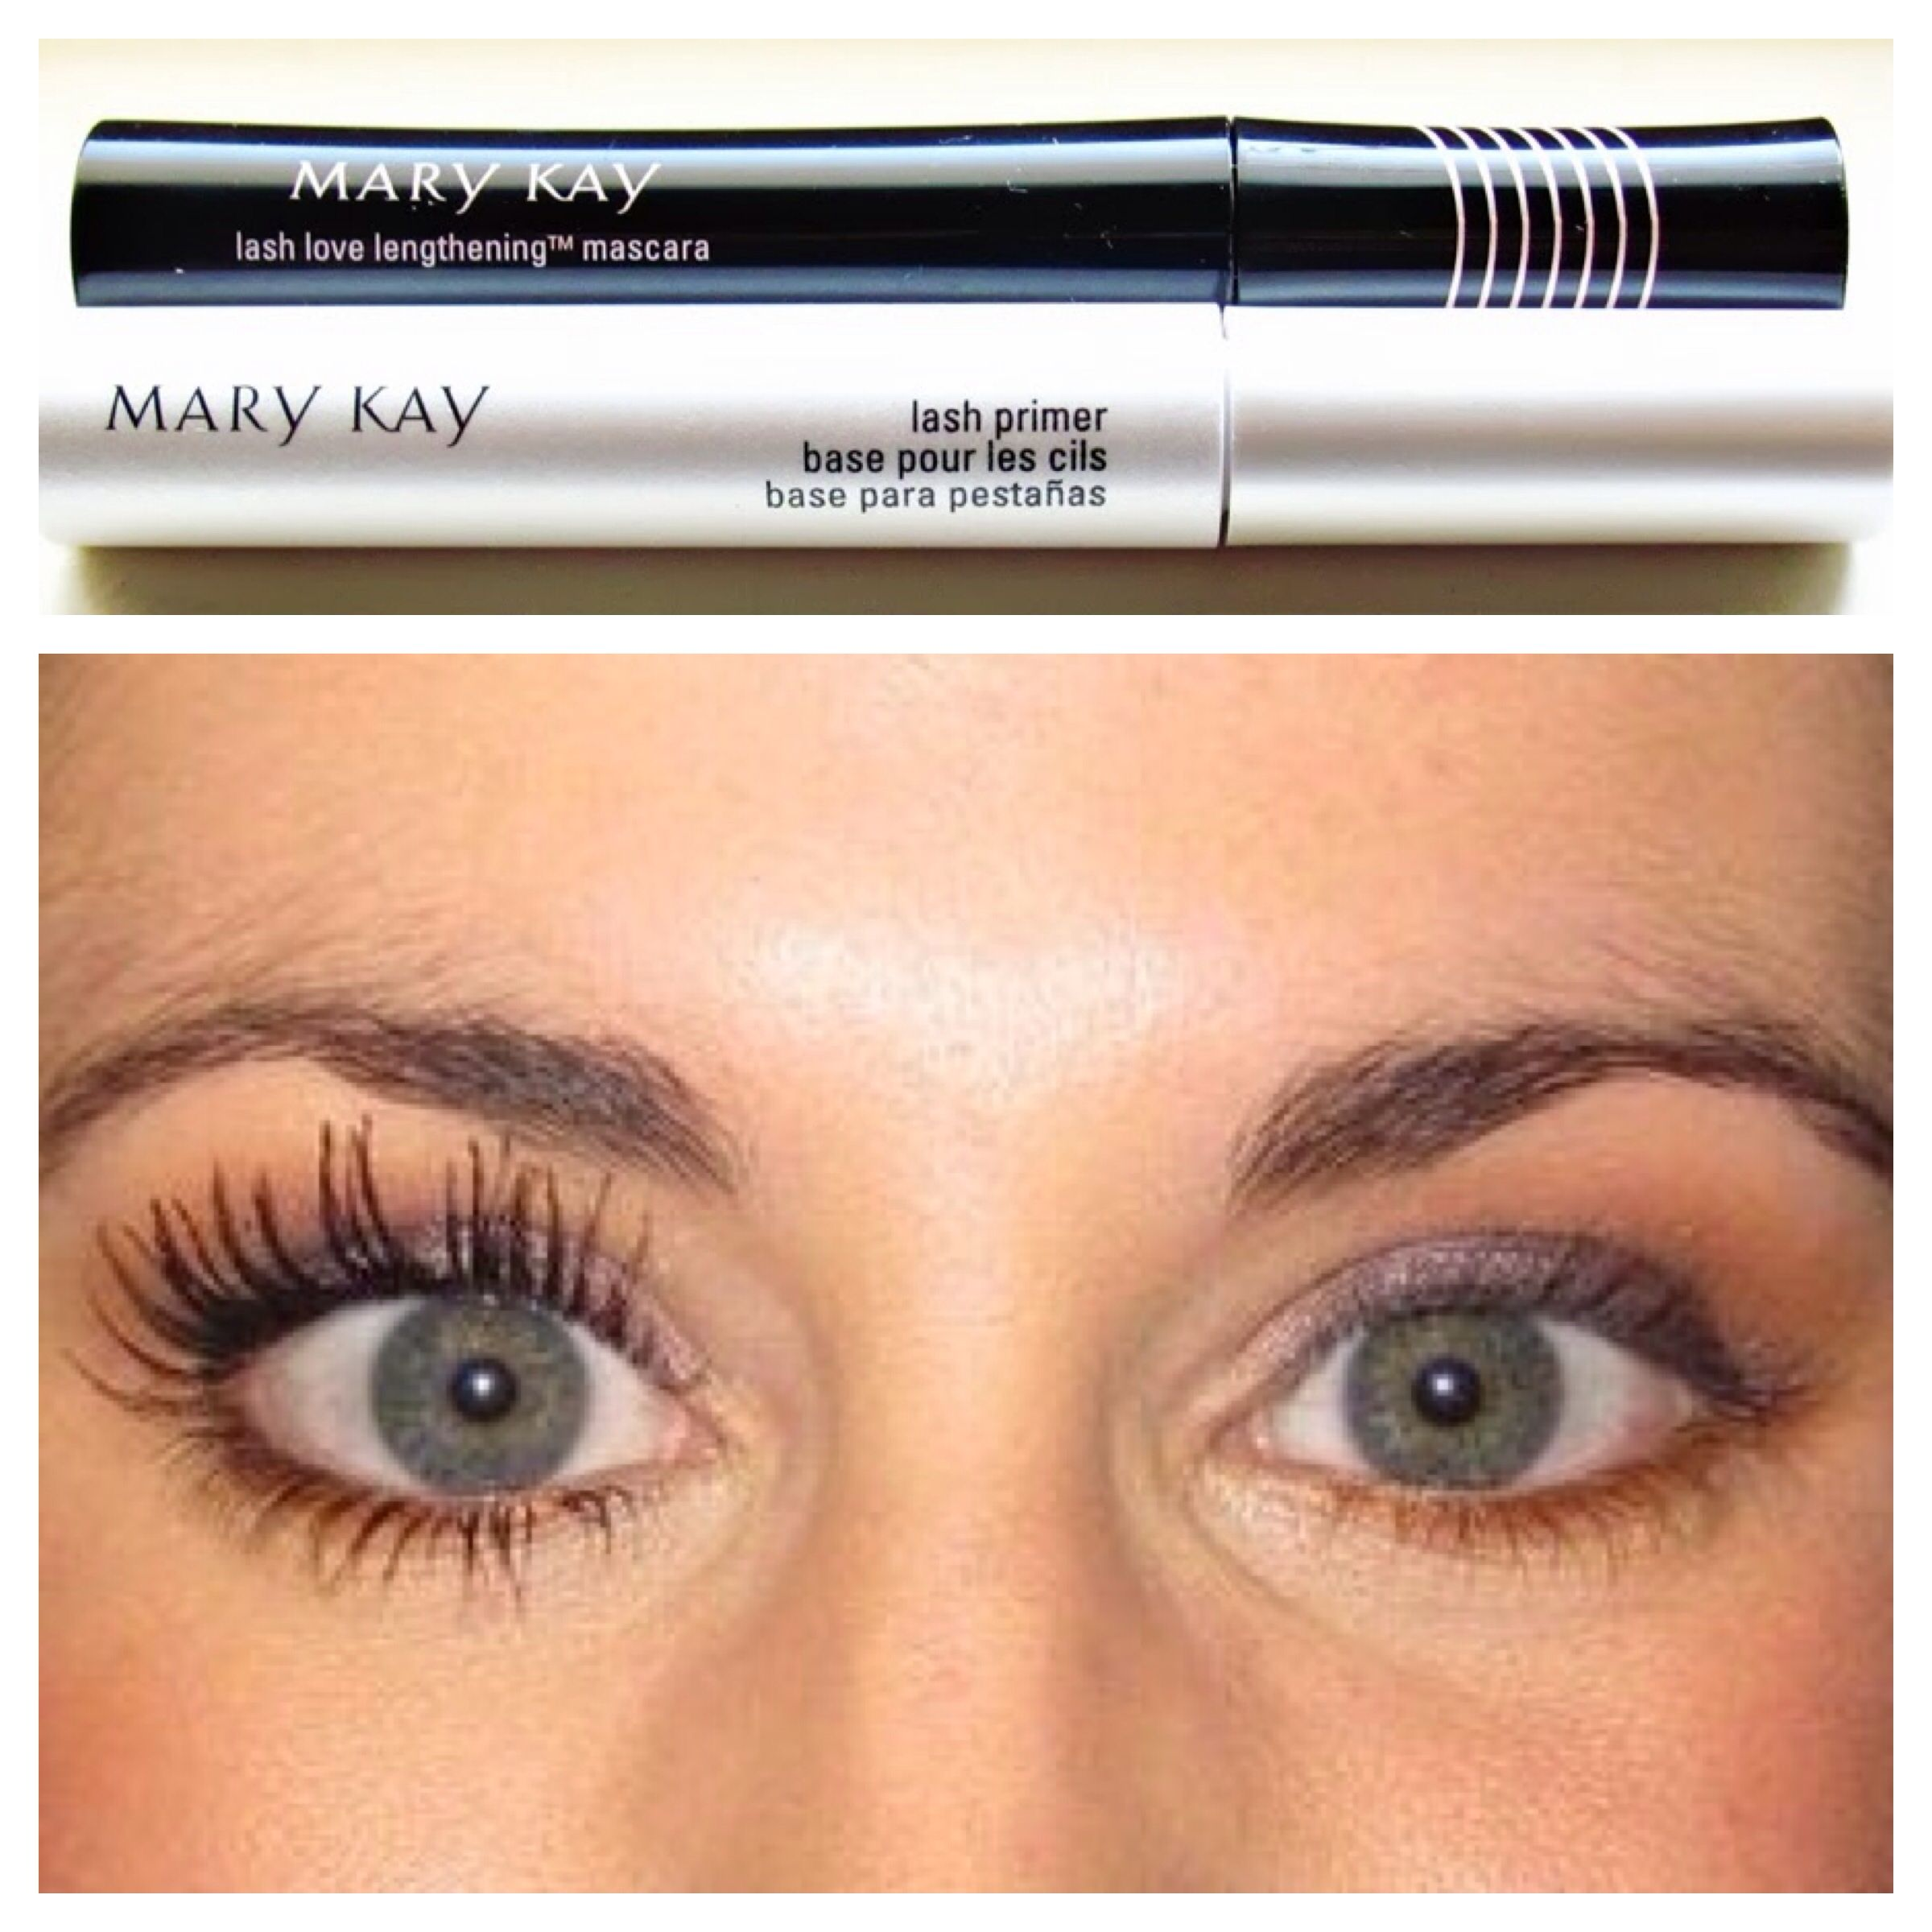 d3d6c527582 Lashlove lengthening mascara and lash love primer...a match made in heaven!  Get yours at www.marykay.com/estherflor FREE shipping anywhere in US, ...